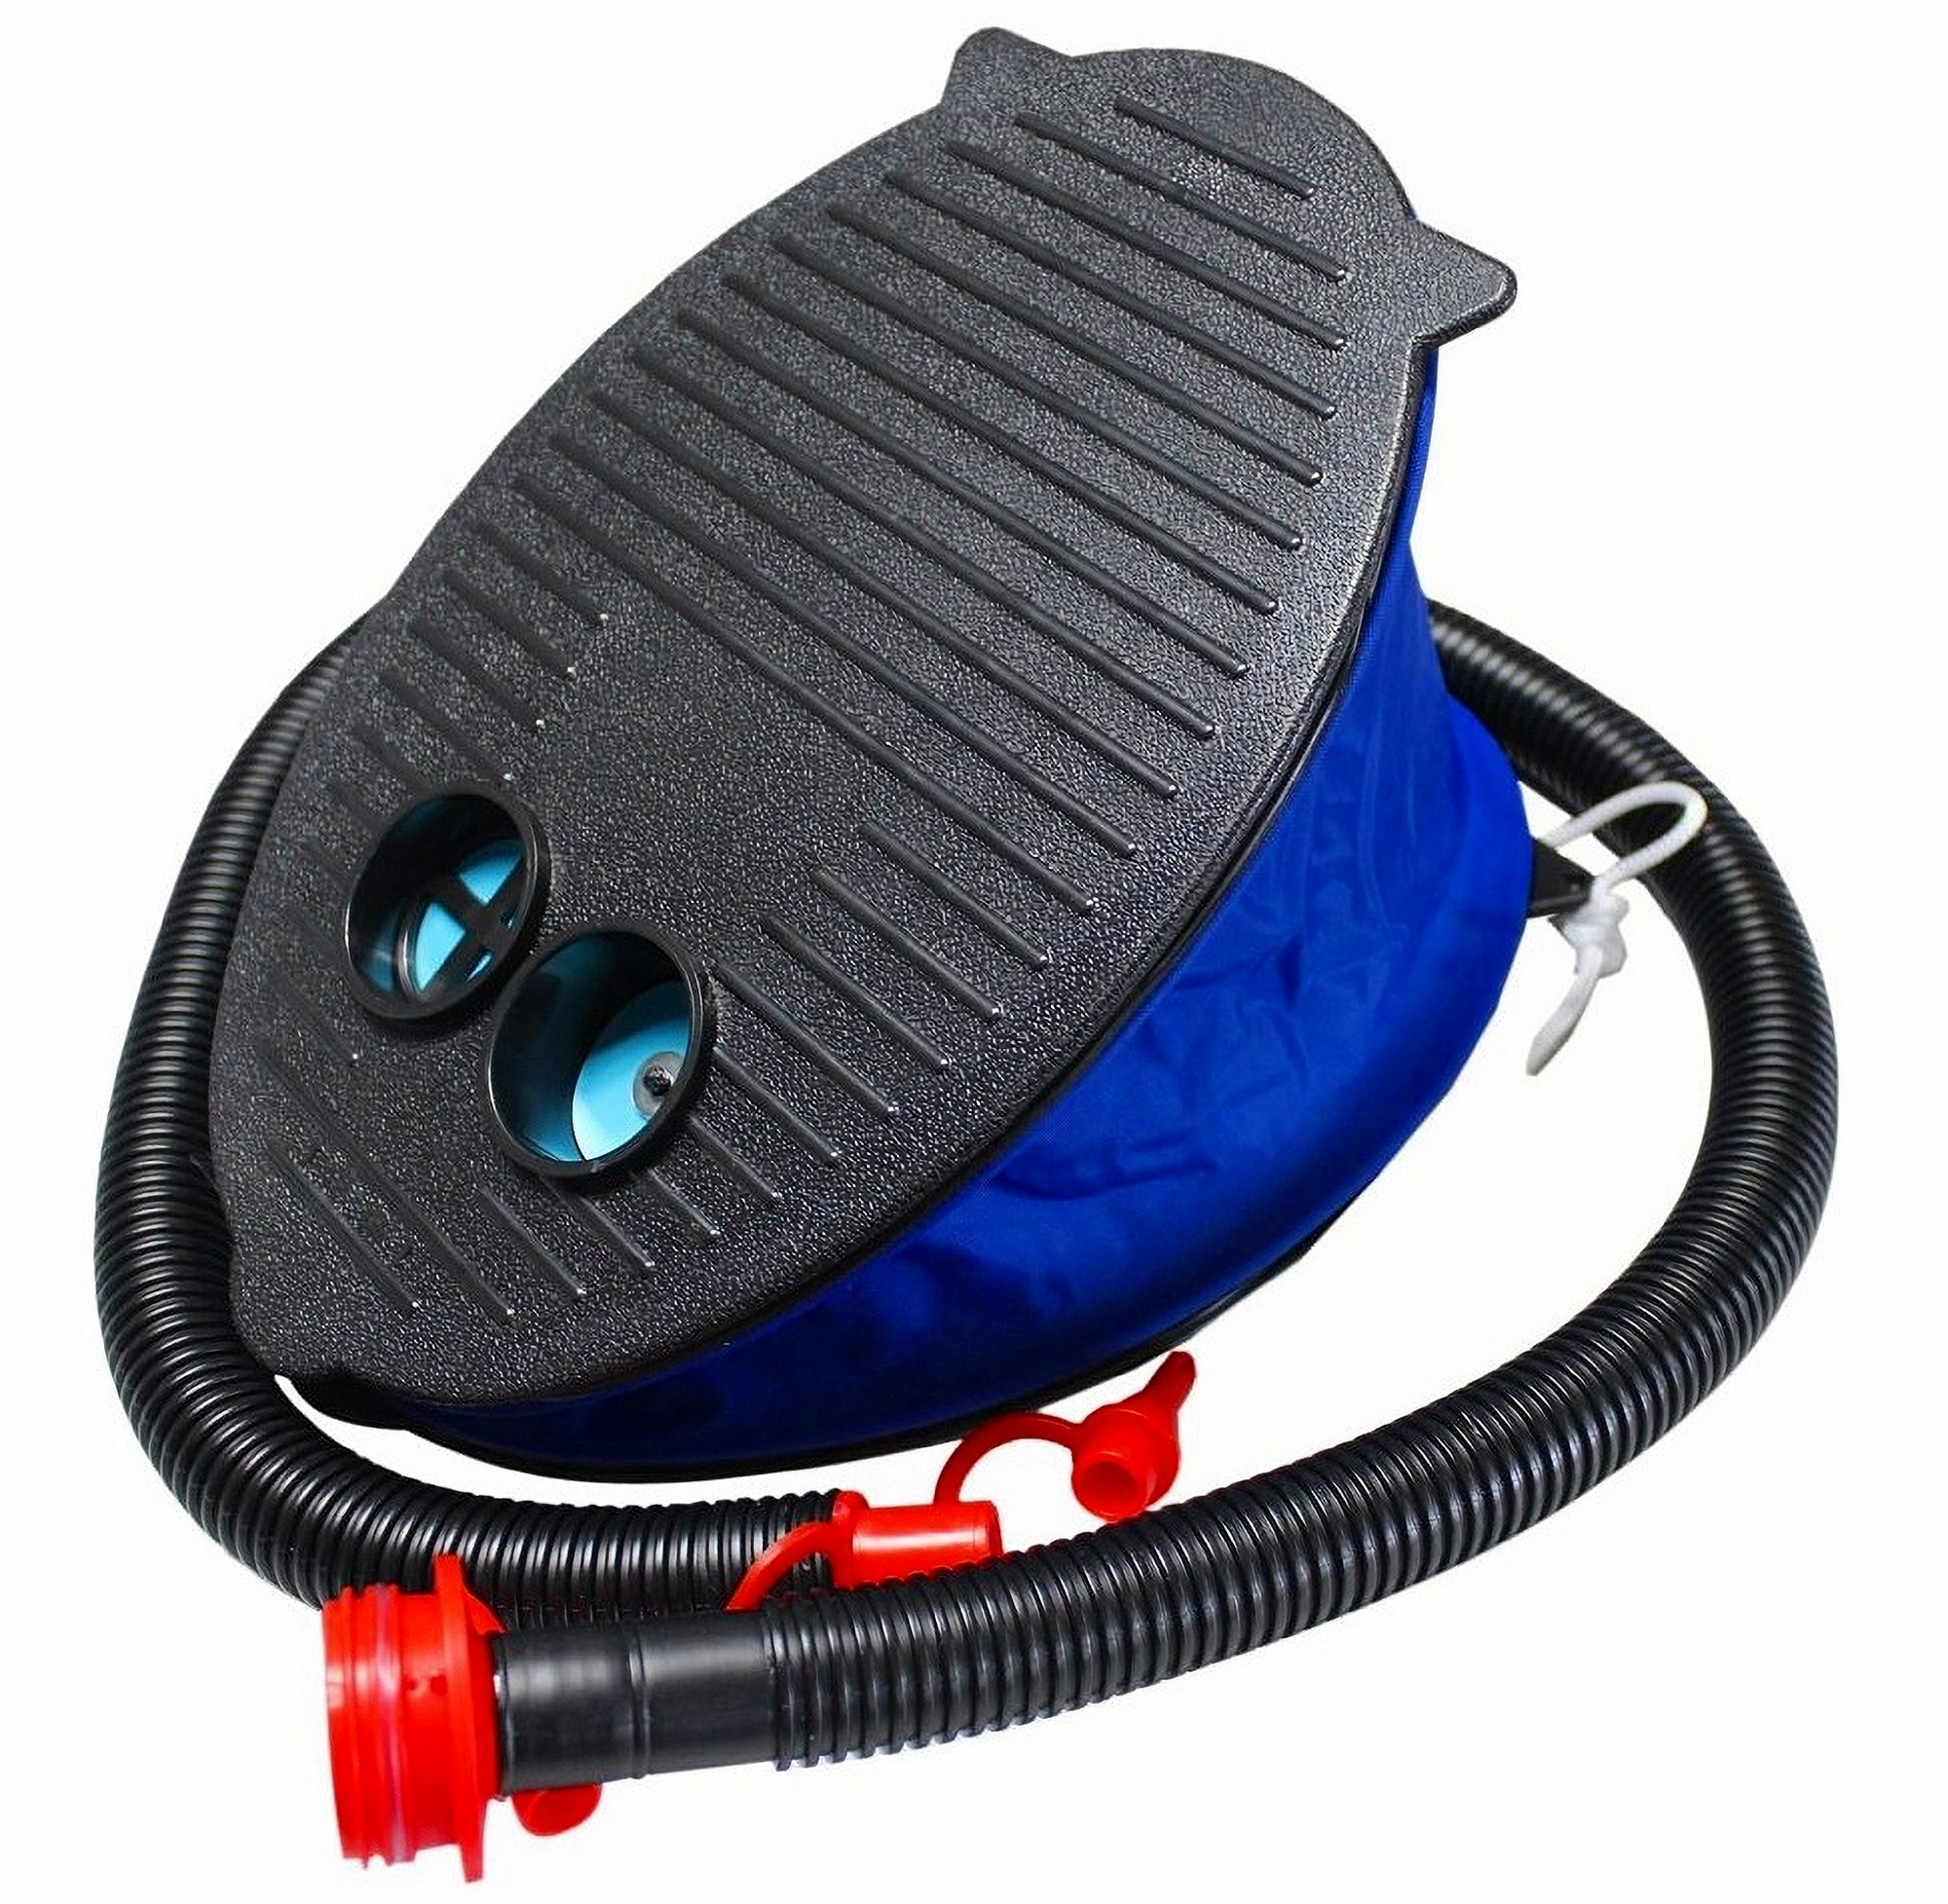 Intex    Outdoor Foot Pump available in Multi - Coloured - Size 28 cm 6